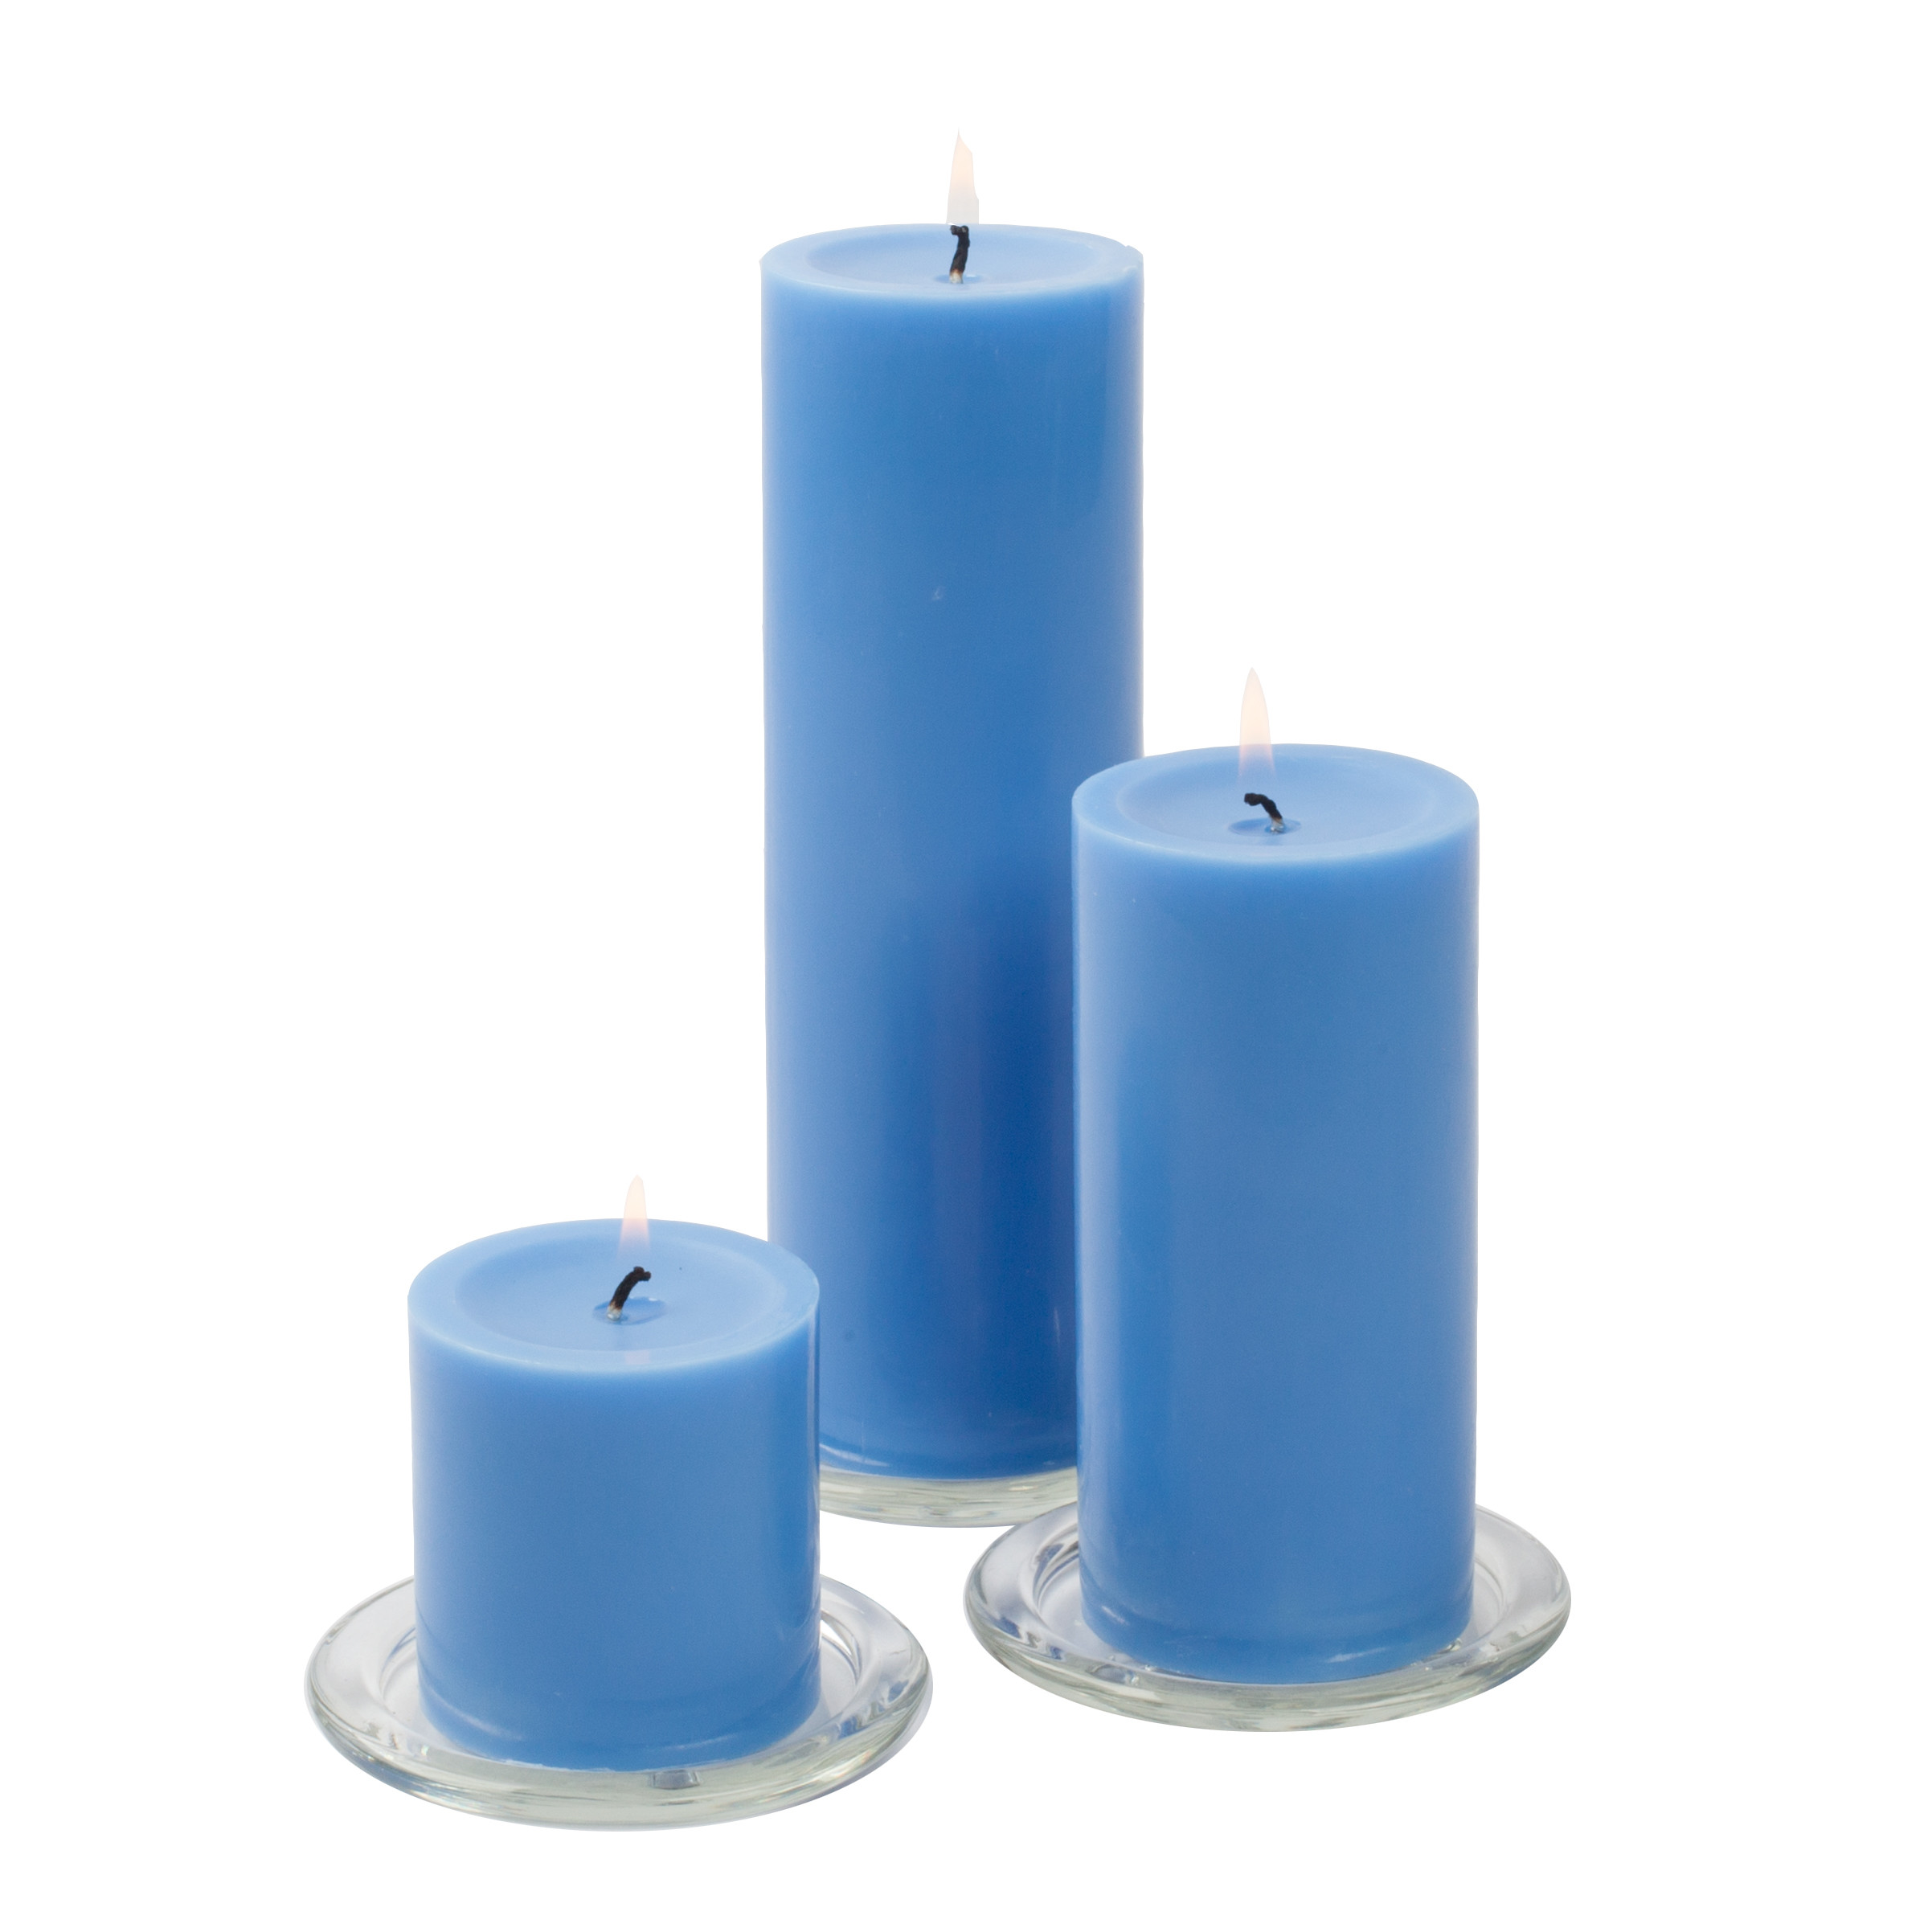 eastland glass cylinder vases set of 4 of eastland square holders richland pillar candles set of 3 quick with white a· ivory a· black a· lavender a· light blue